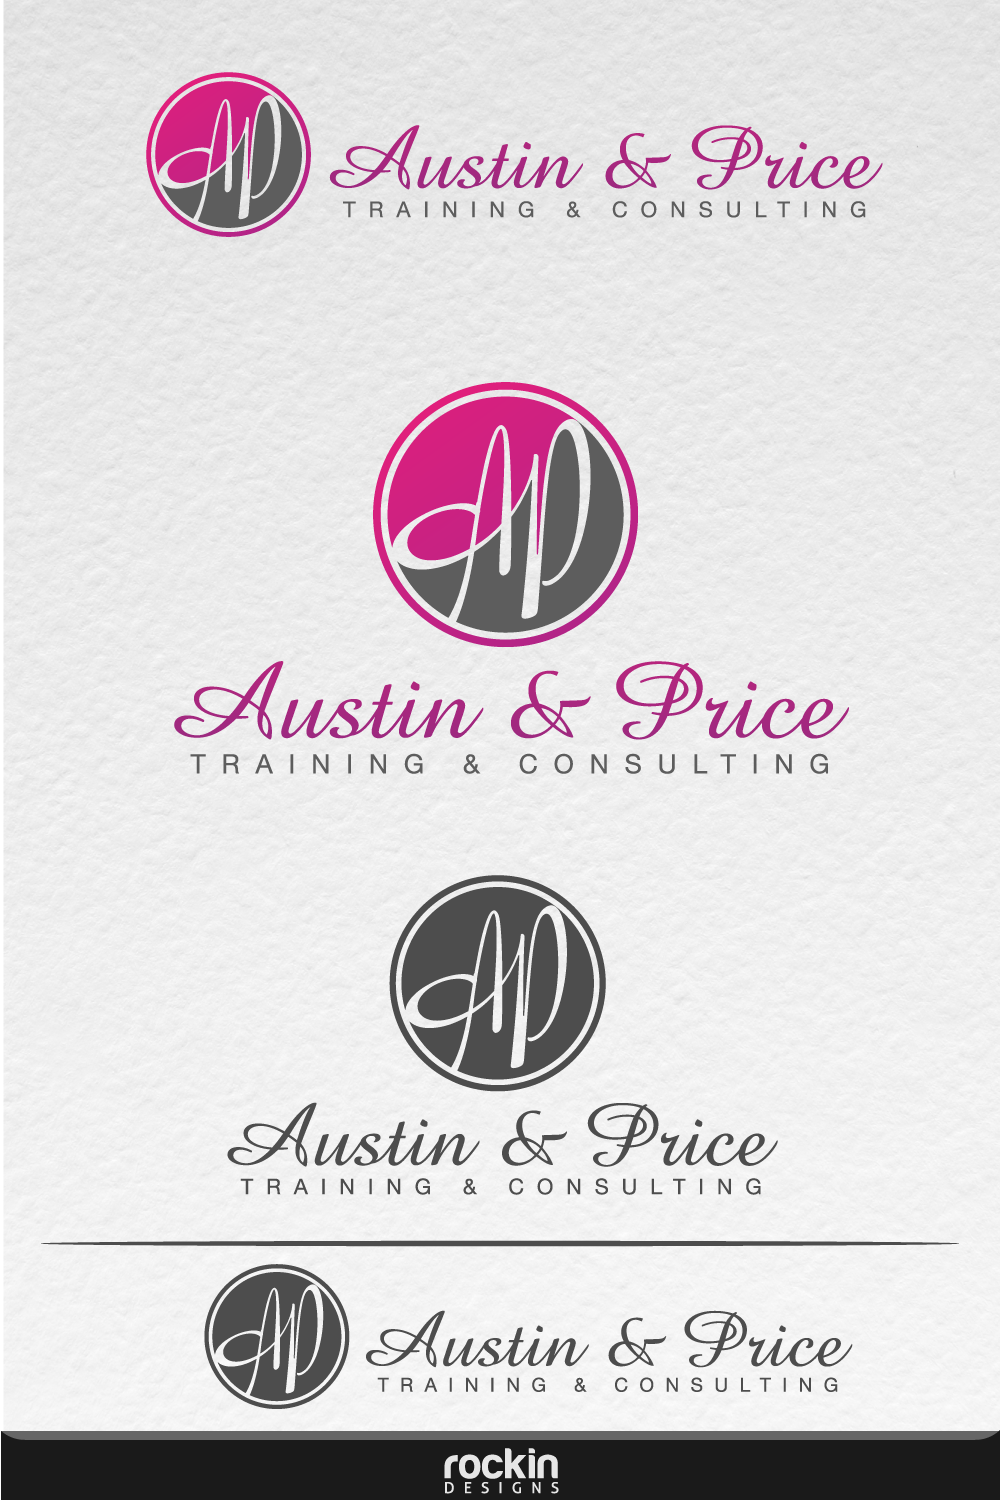 Logo Design by rockin - Entry No. 50 in the Logo Design Contest Artistic Logo Design for Austin Price Advisory.